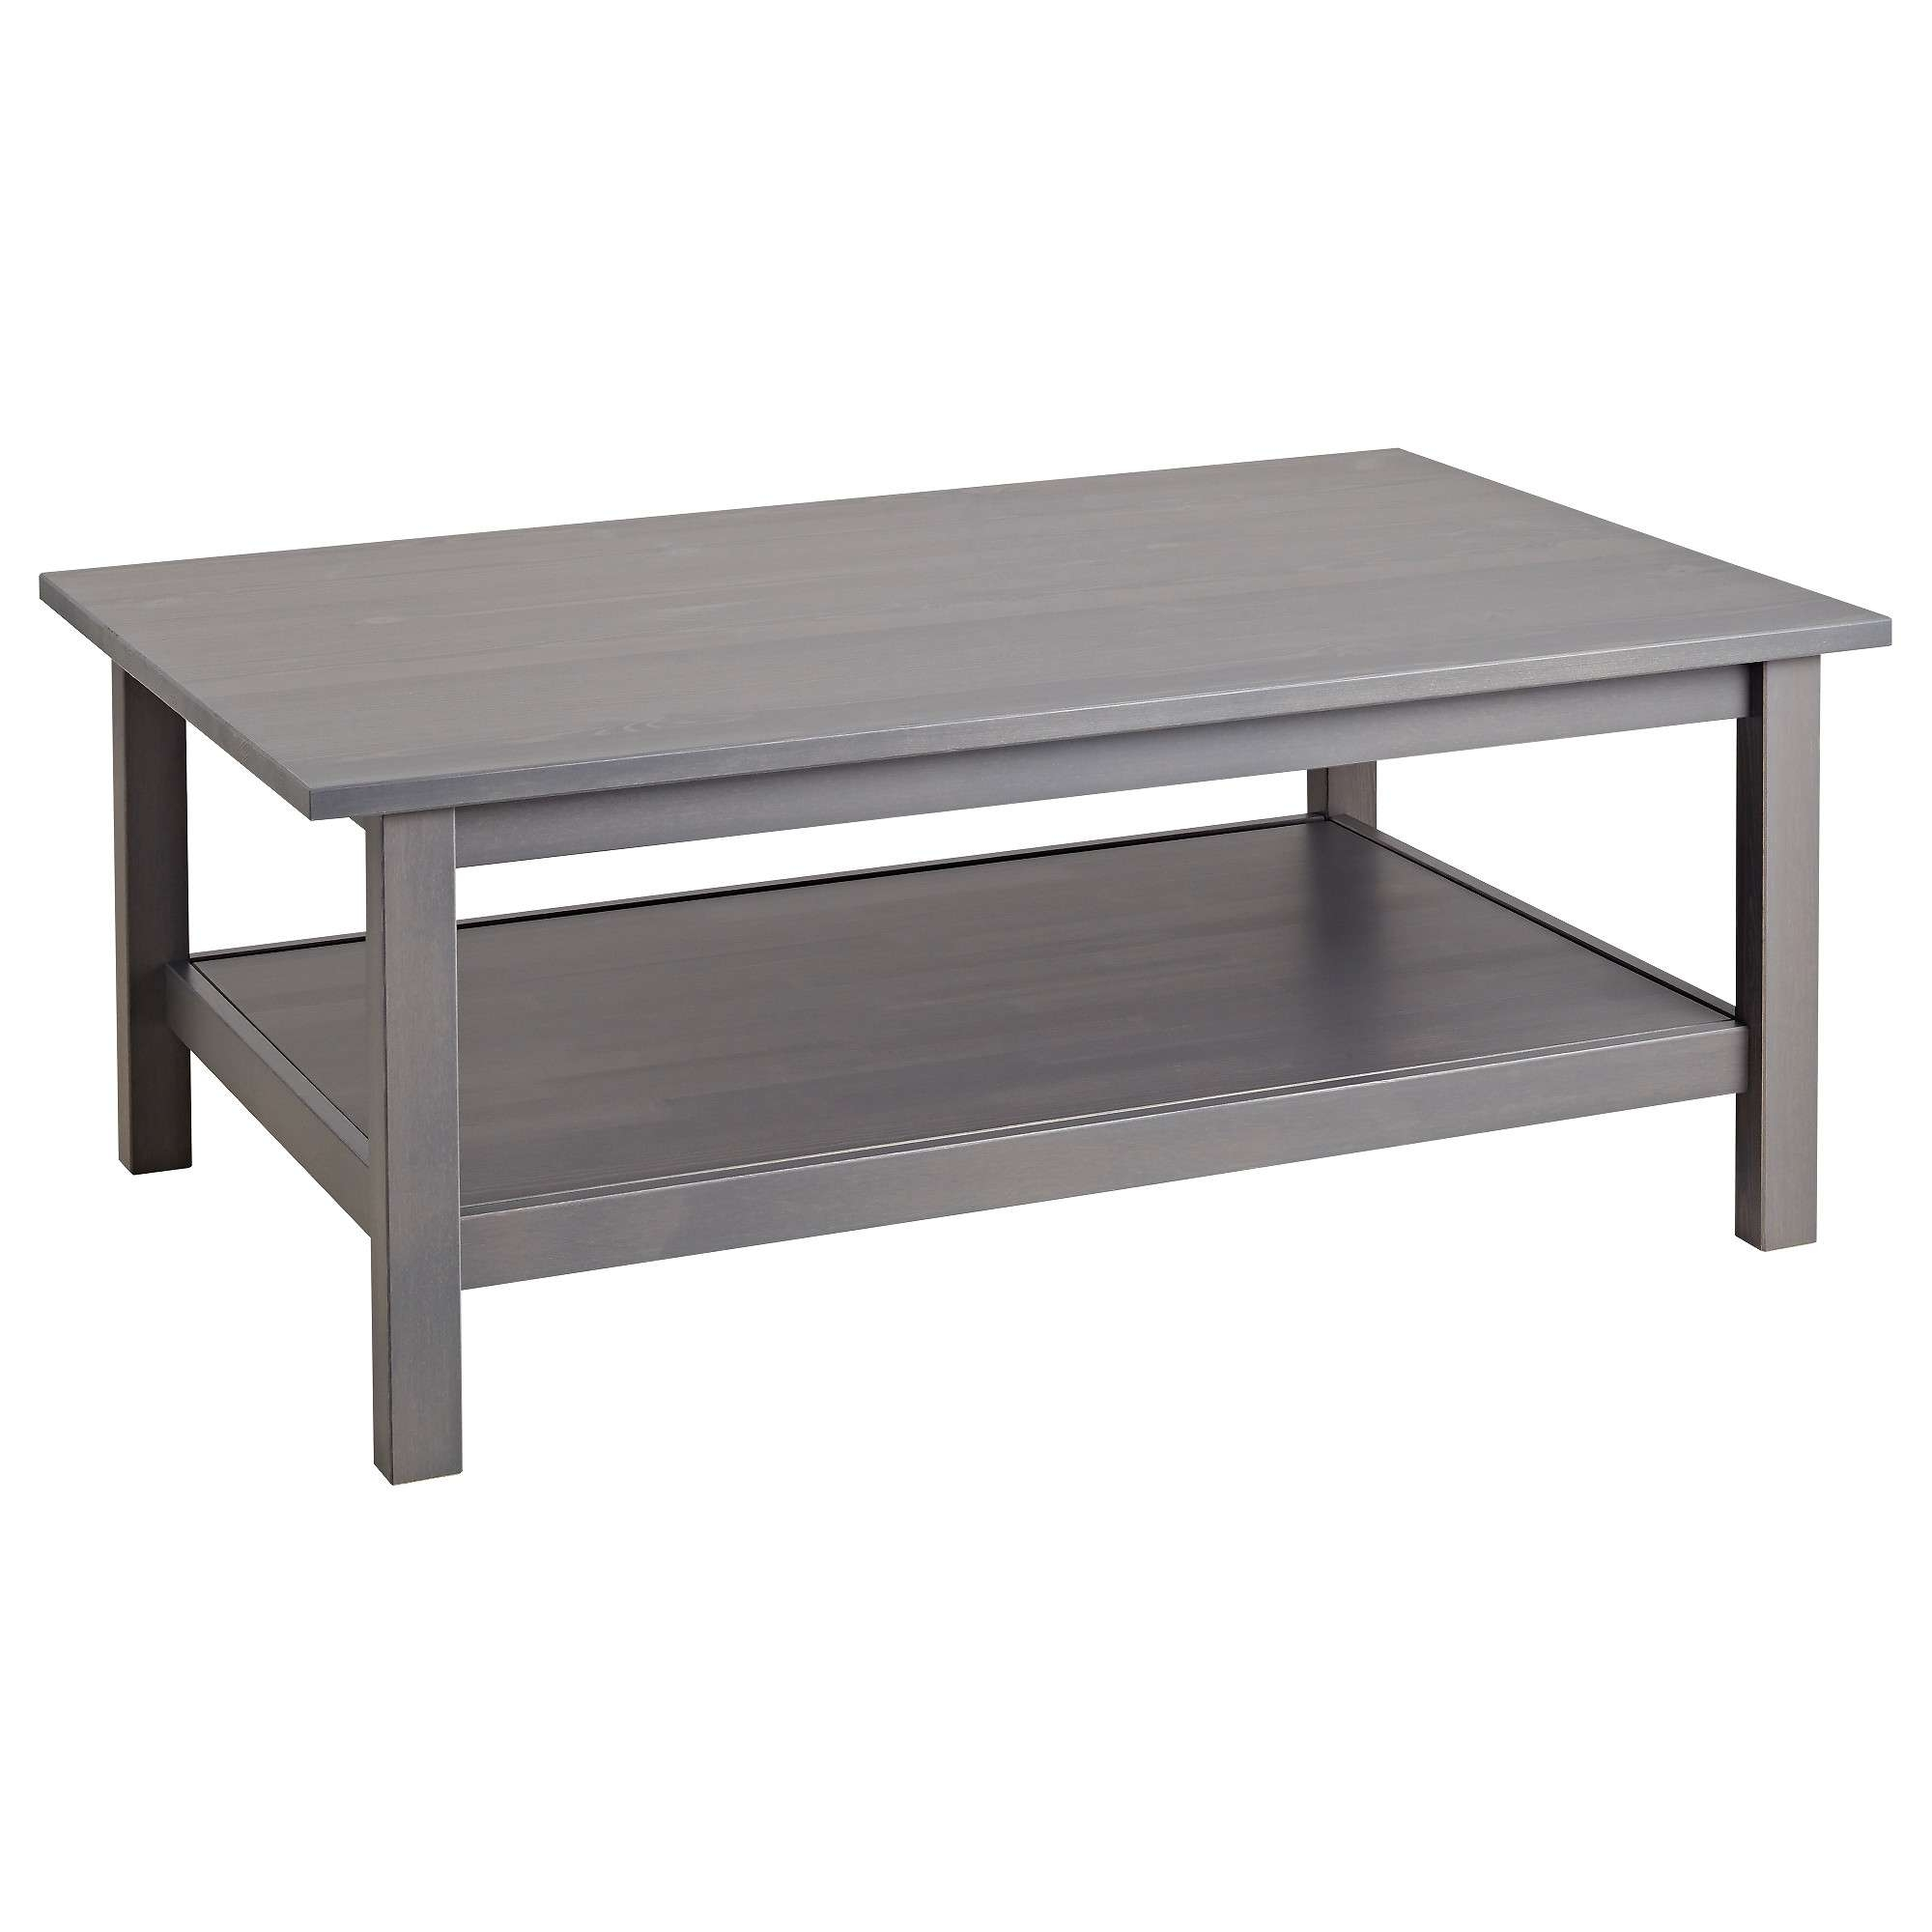 Latest Rectangular Coffee Tables Intended For Coffee Tables – Glass & Wooden Coffee Tables – Ikea (View 20 of 20)